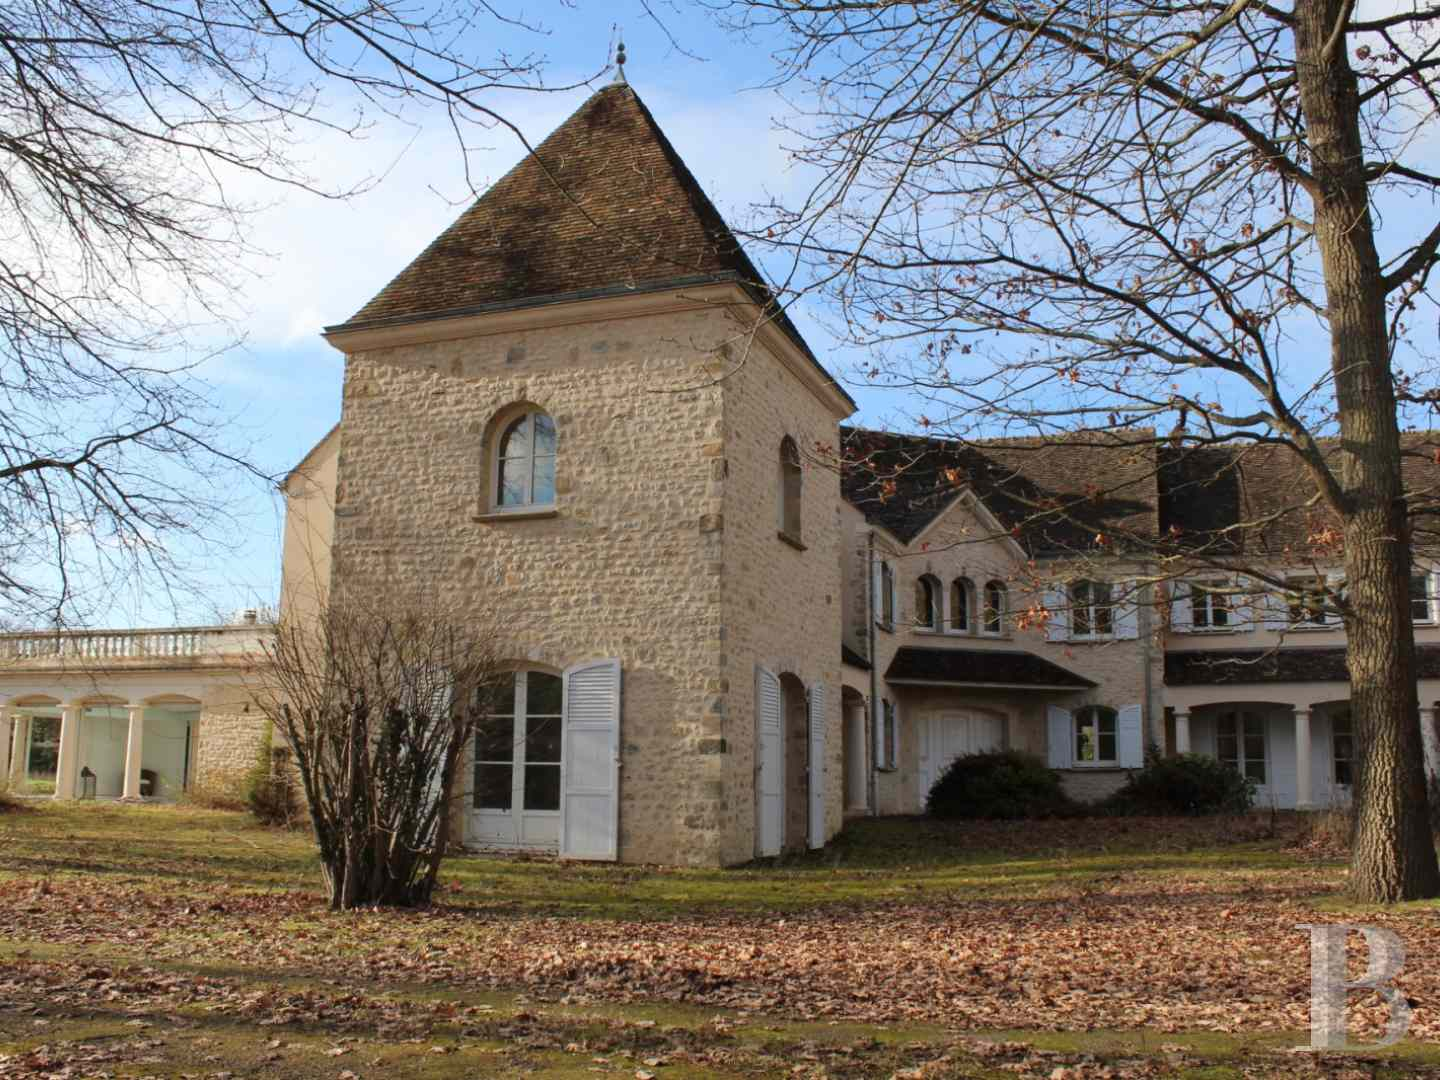 character properties France ile de france character houses - 4 zoom